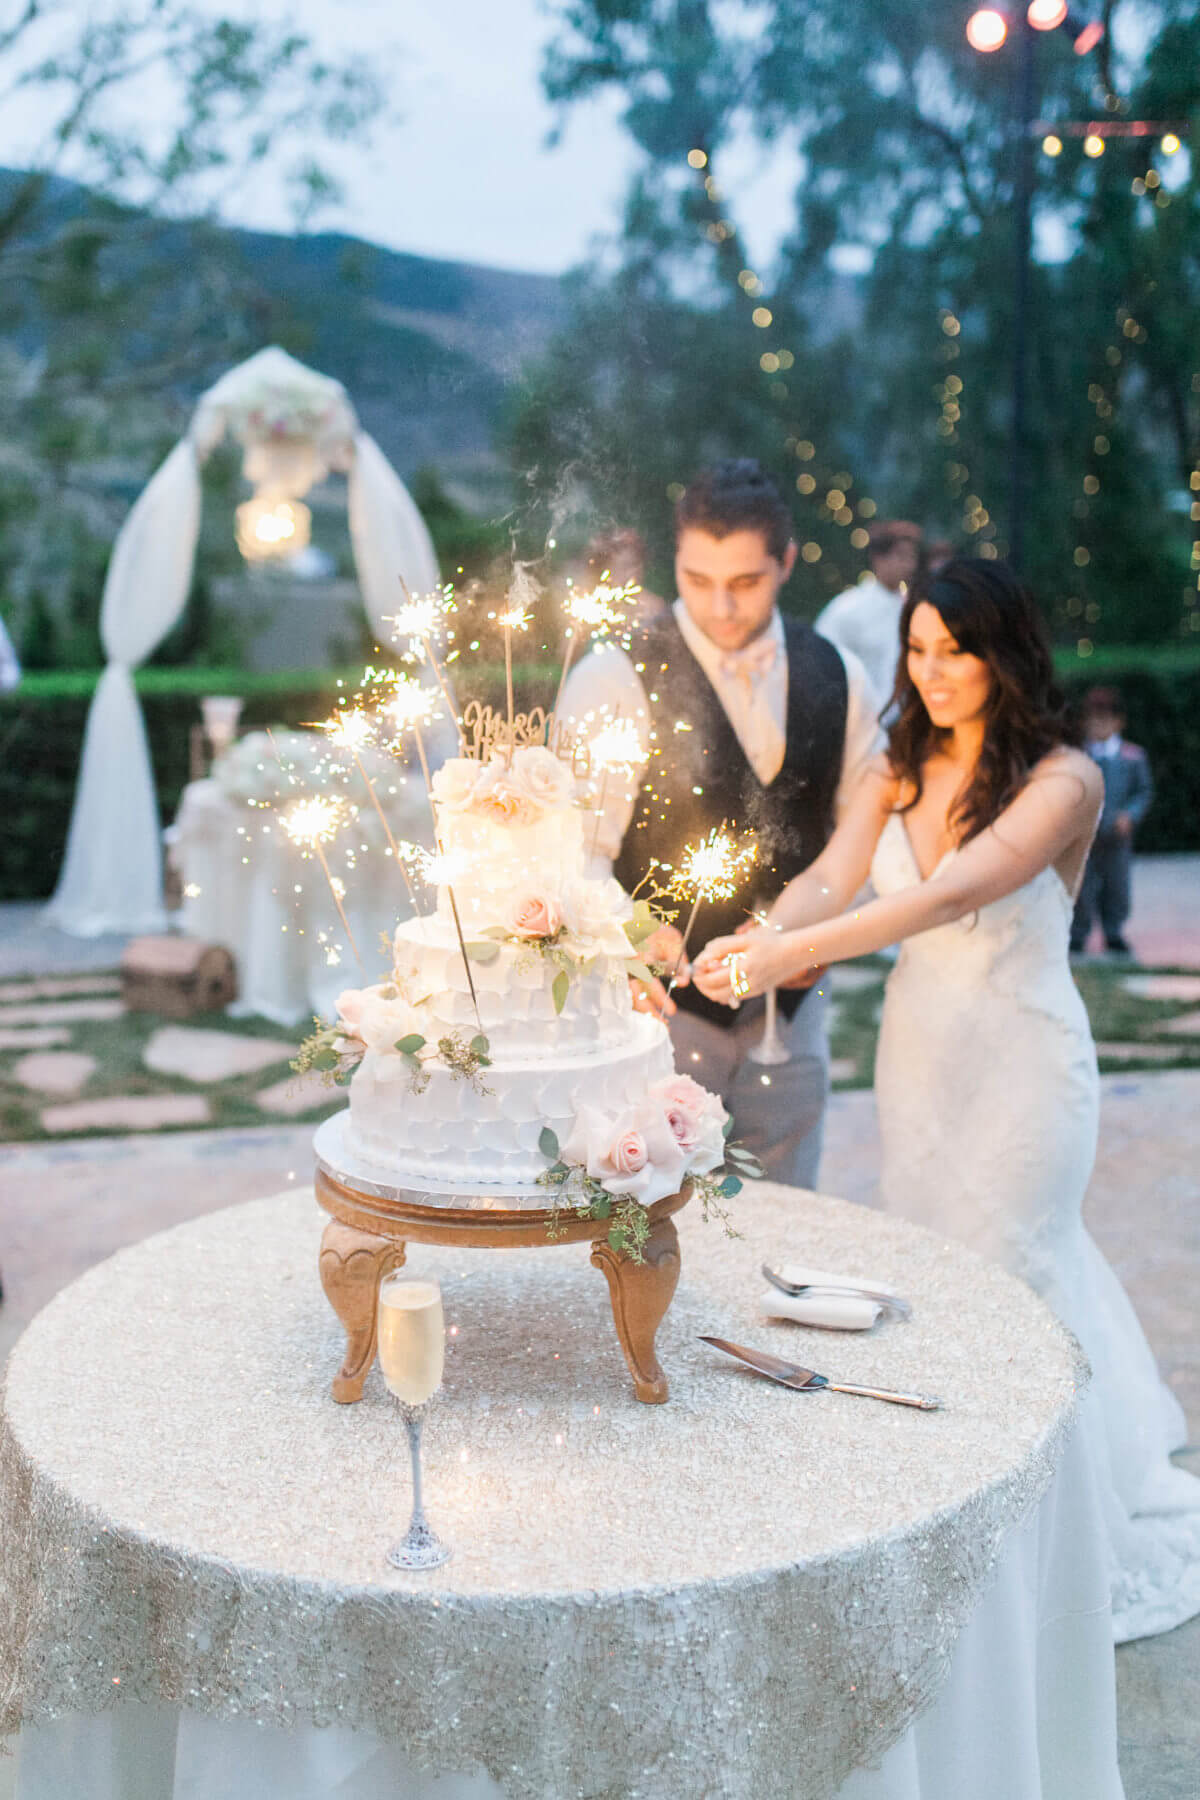 Brides and groom cutting cake